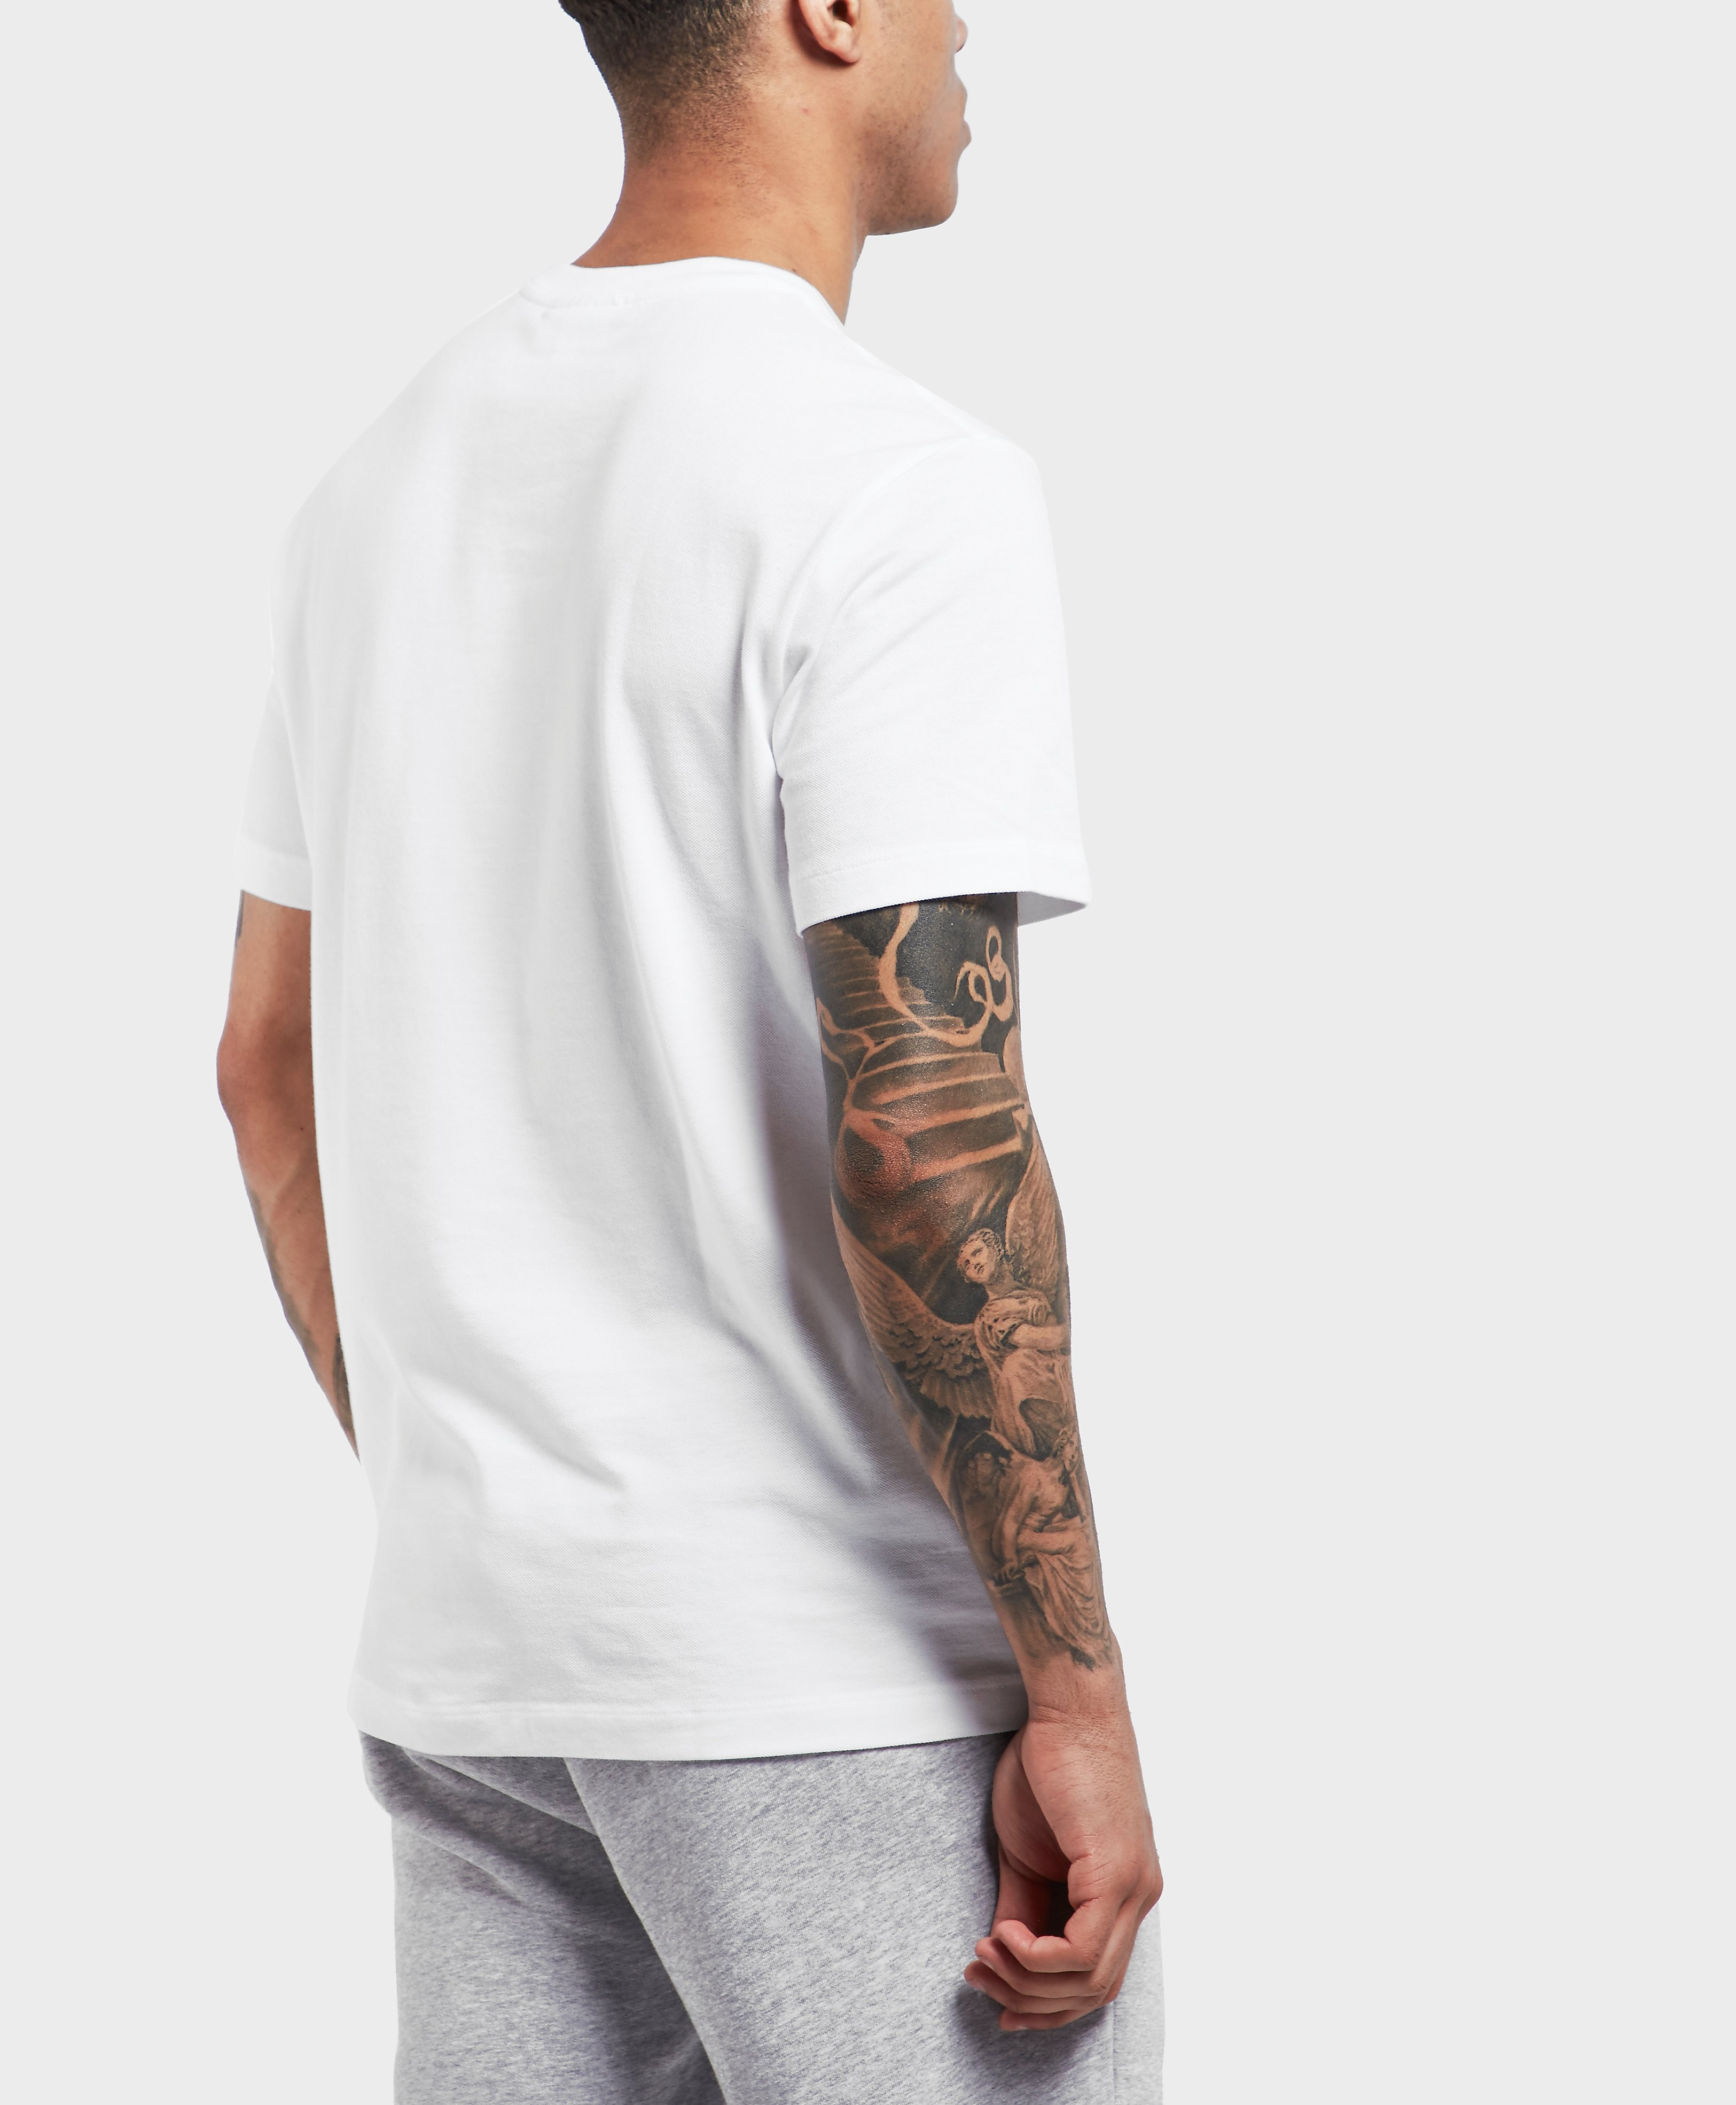 Lacoste Embroidered Pique Short Sleeve T-Shirt